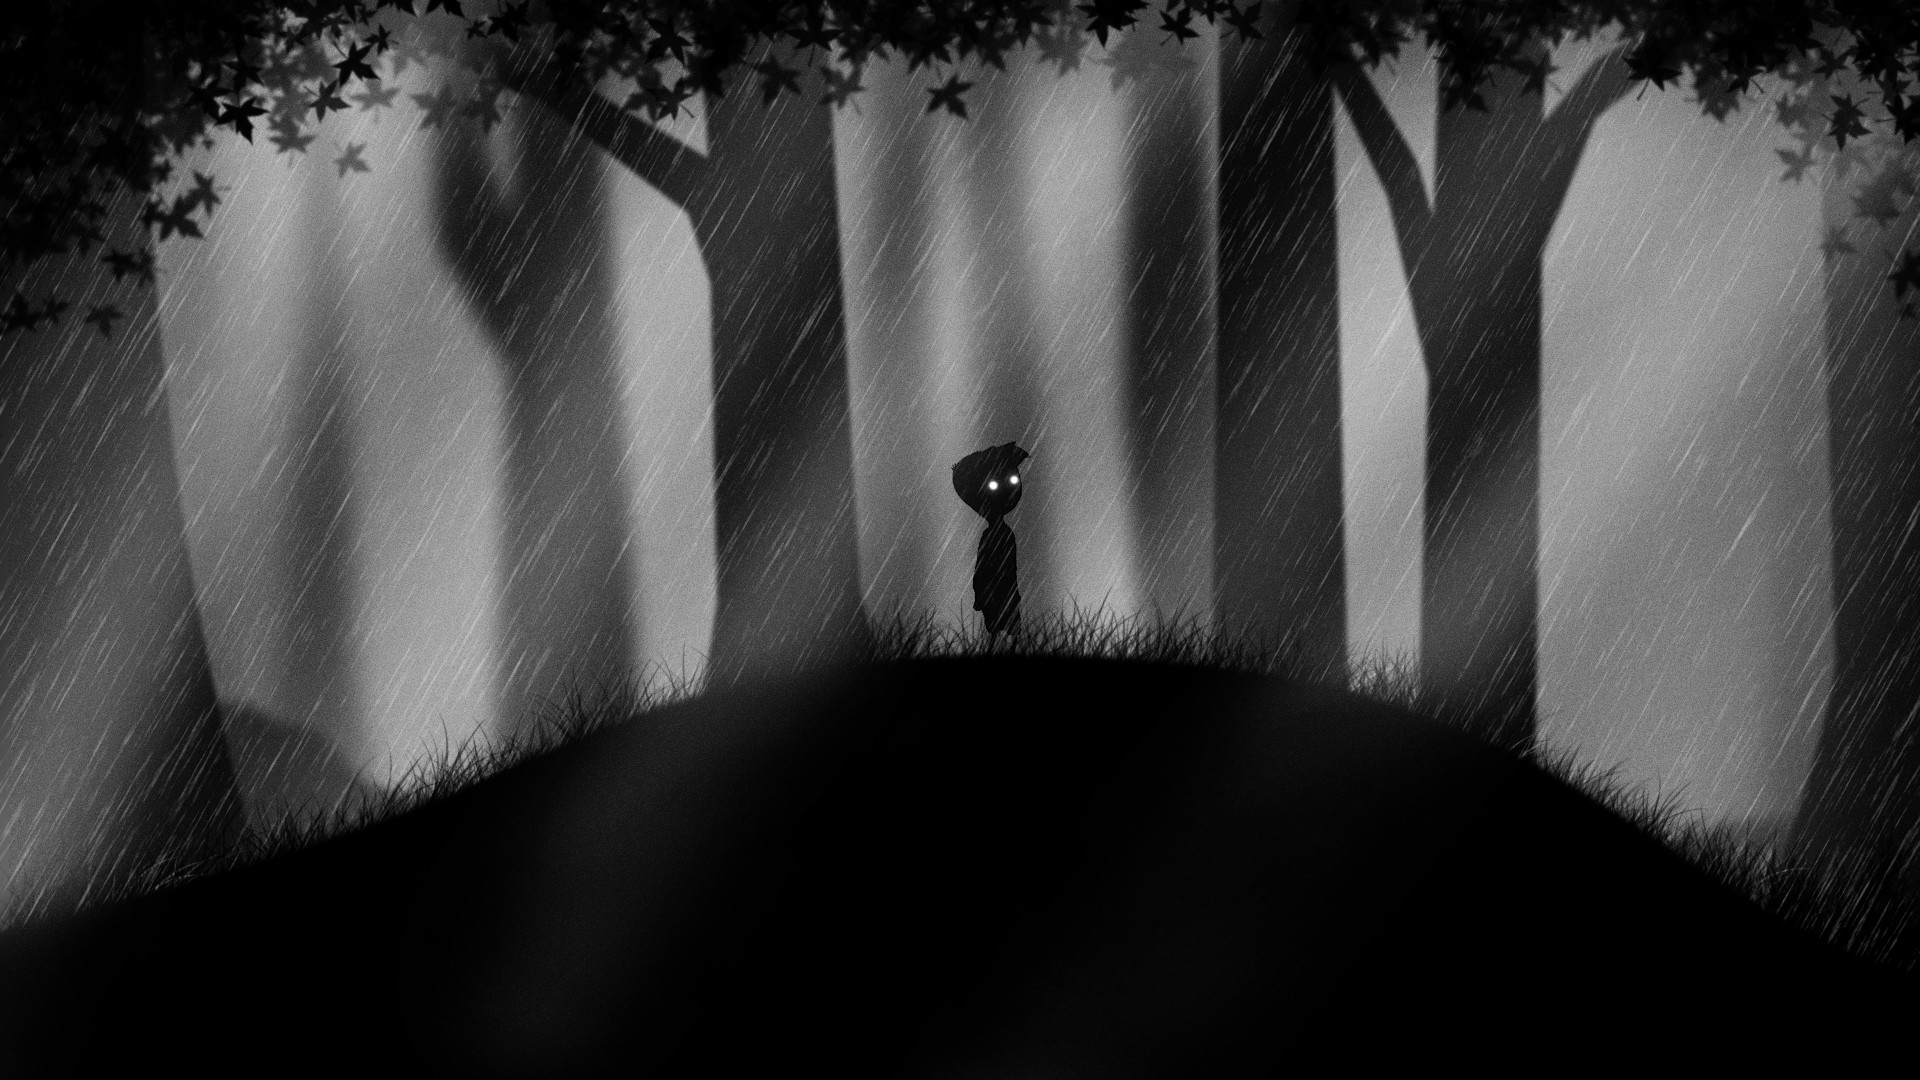 Scary Little Girl Wallpaper Rainy Forest Wallpaper 59 Images